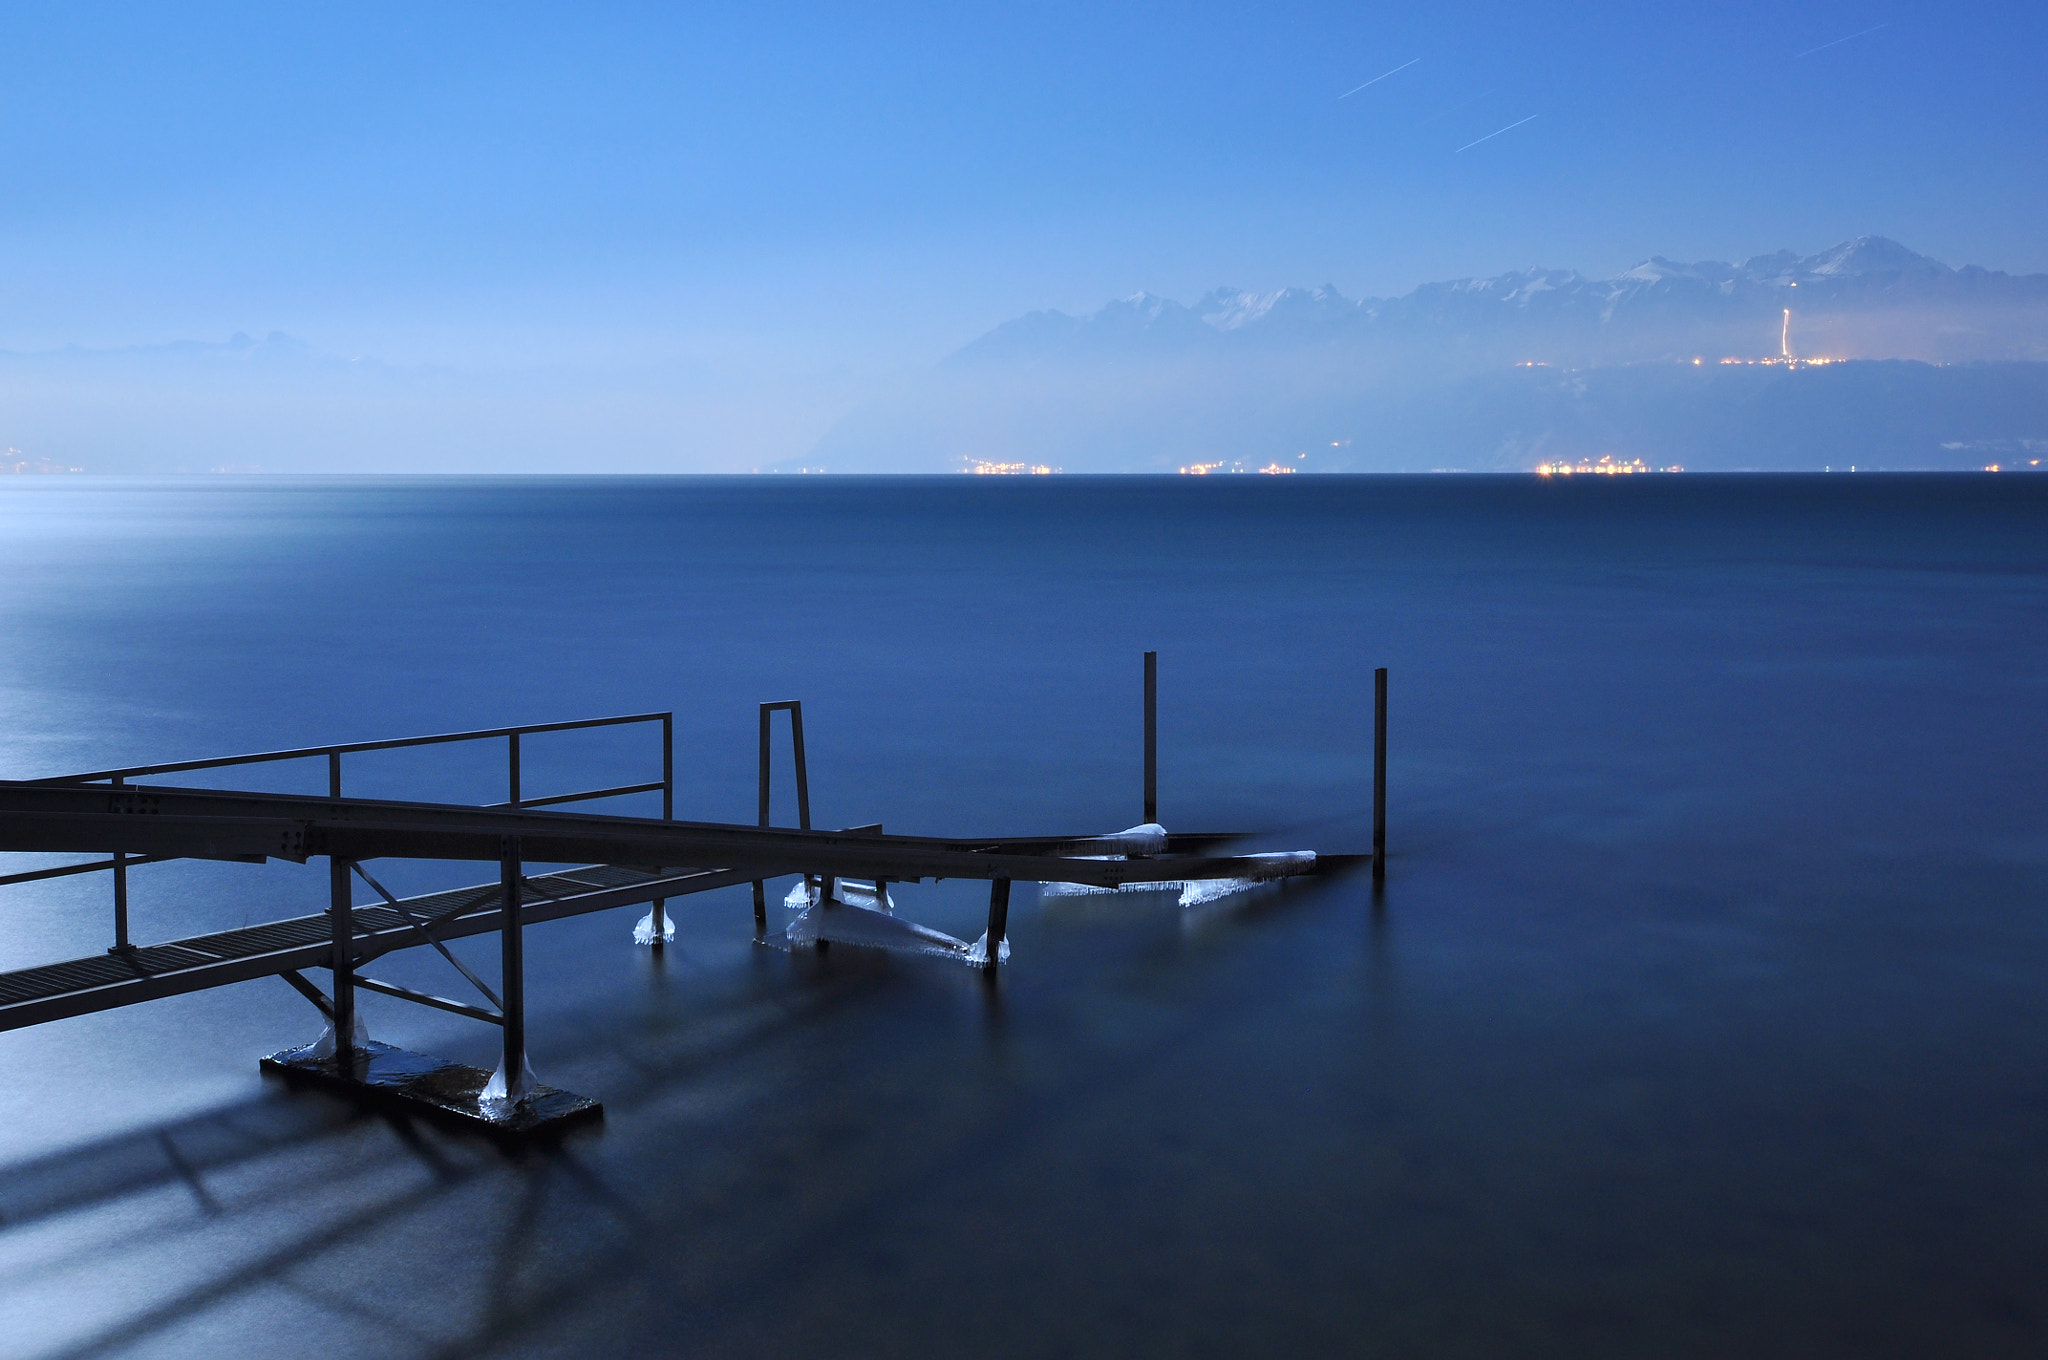 Photograph Moonlit Pier by Maurice Starke on 500px